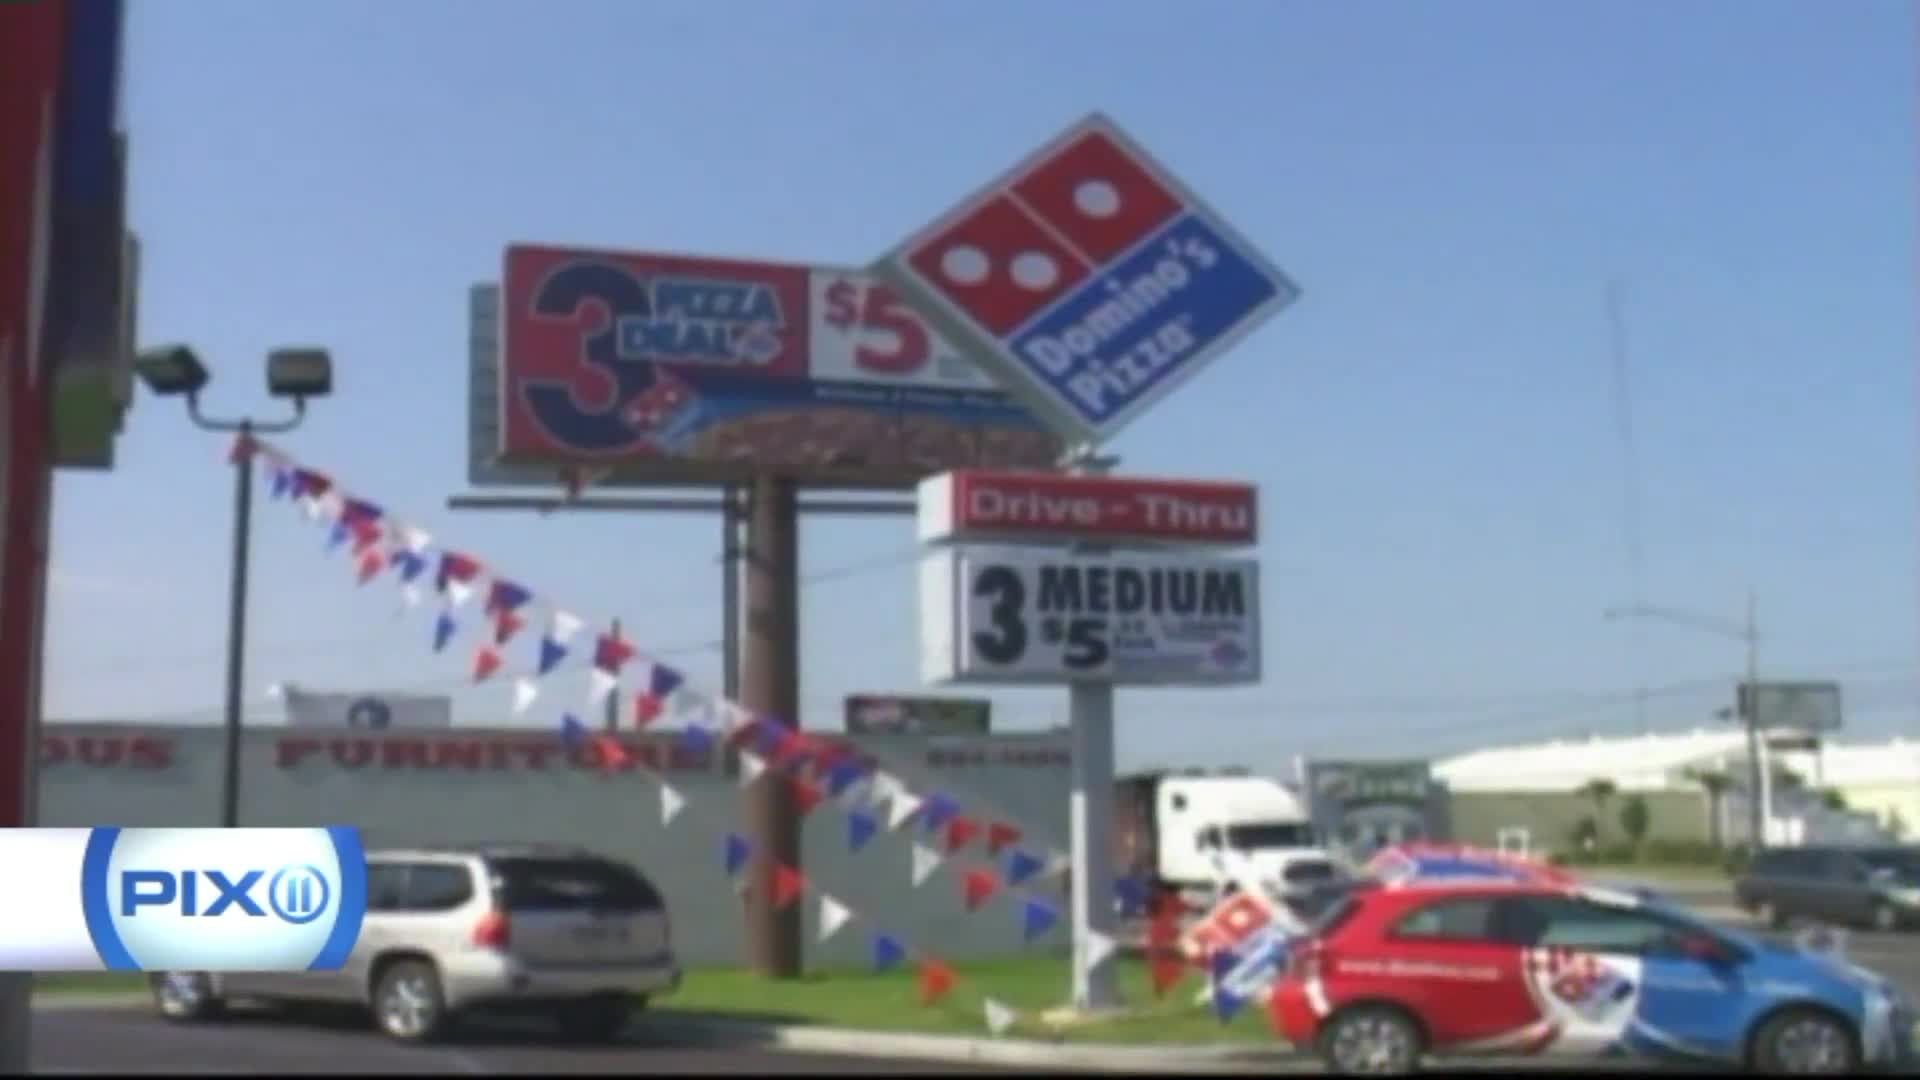 Lawsuit Accuses Domino's of Underpaying Workers